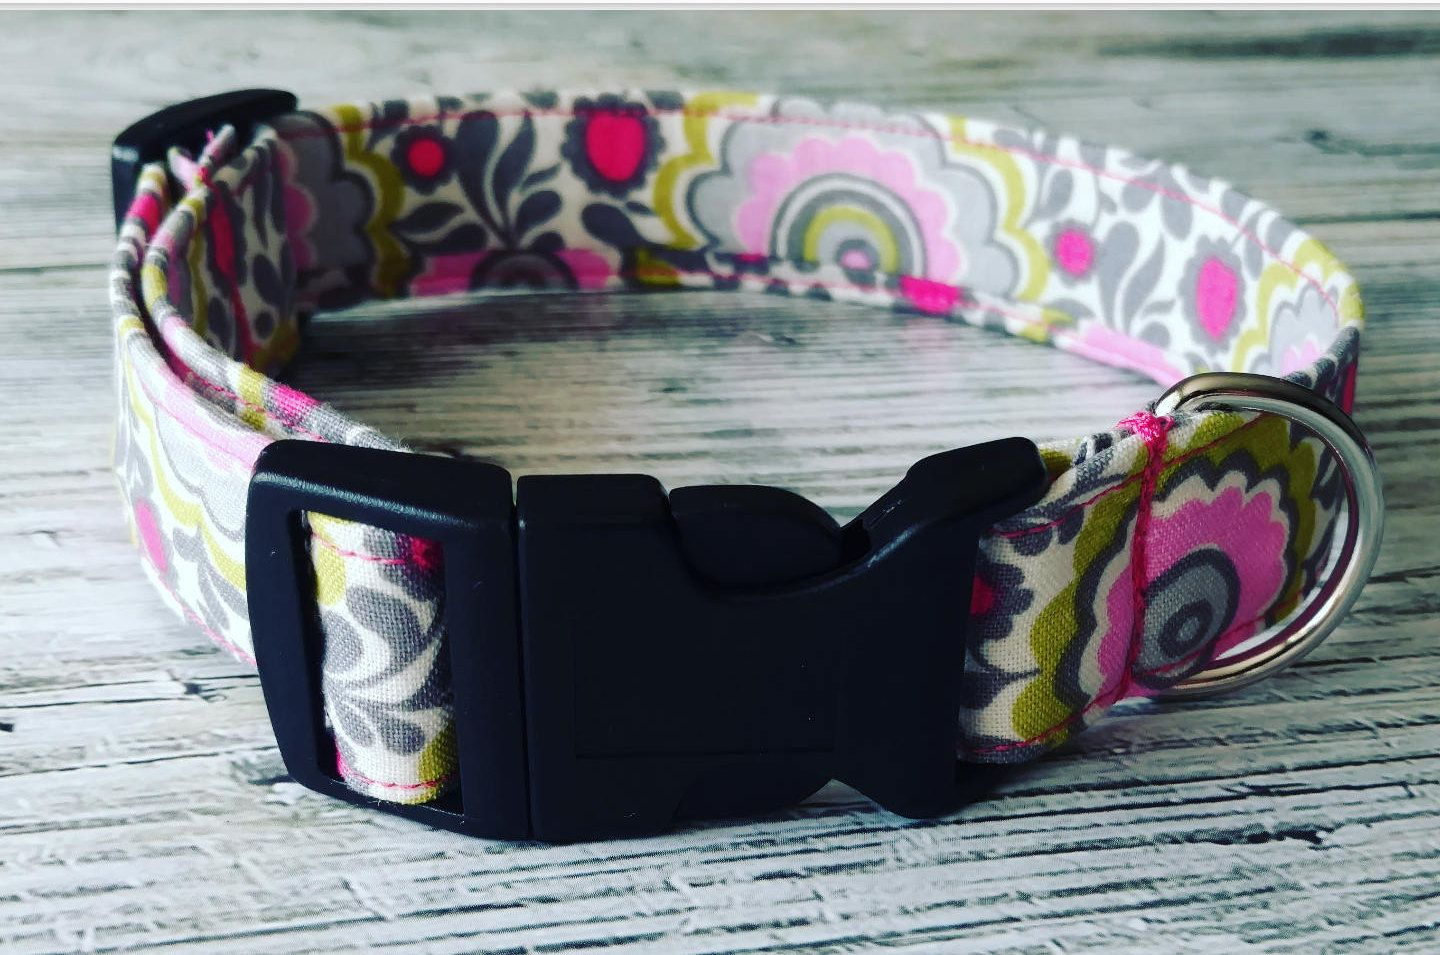 Floral dog collar adjustable puppy collar vintage inspired print floral dog collar adjustable puppy collar vintage inspired print girl dog collar dhlflorist Choice Image